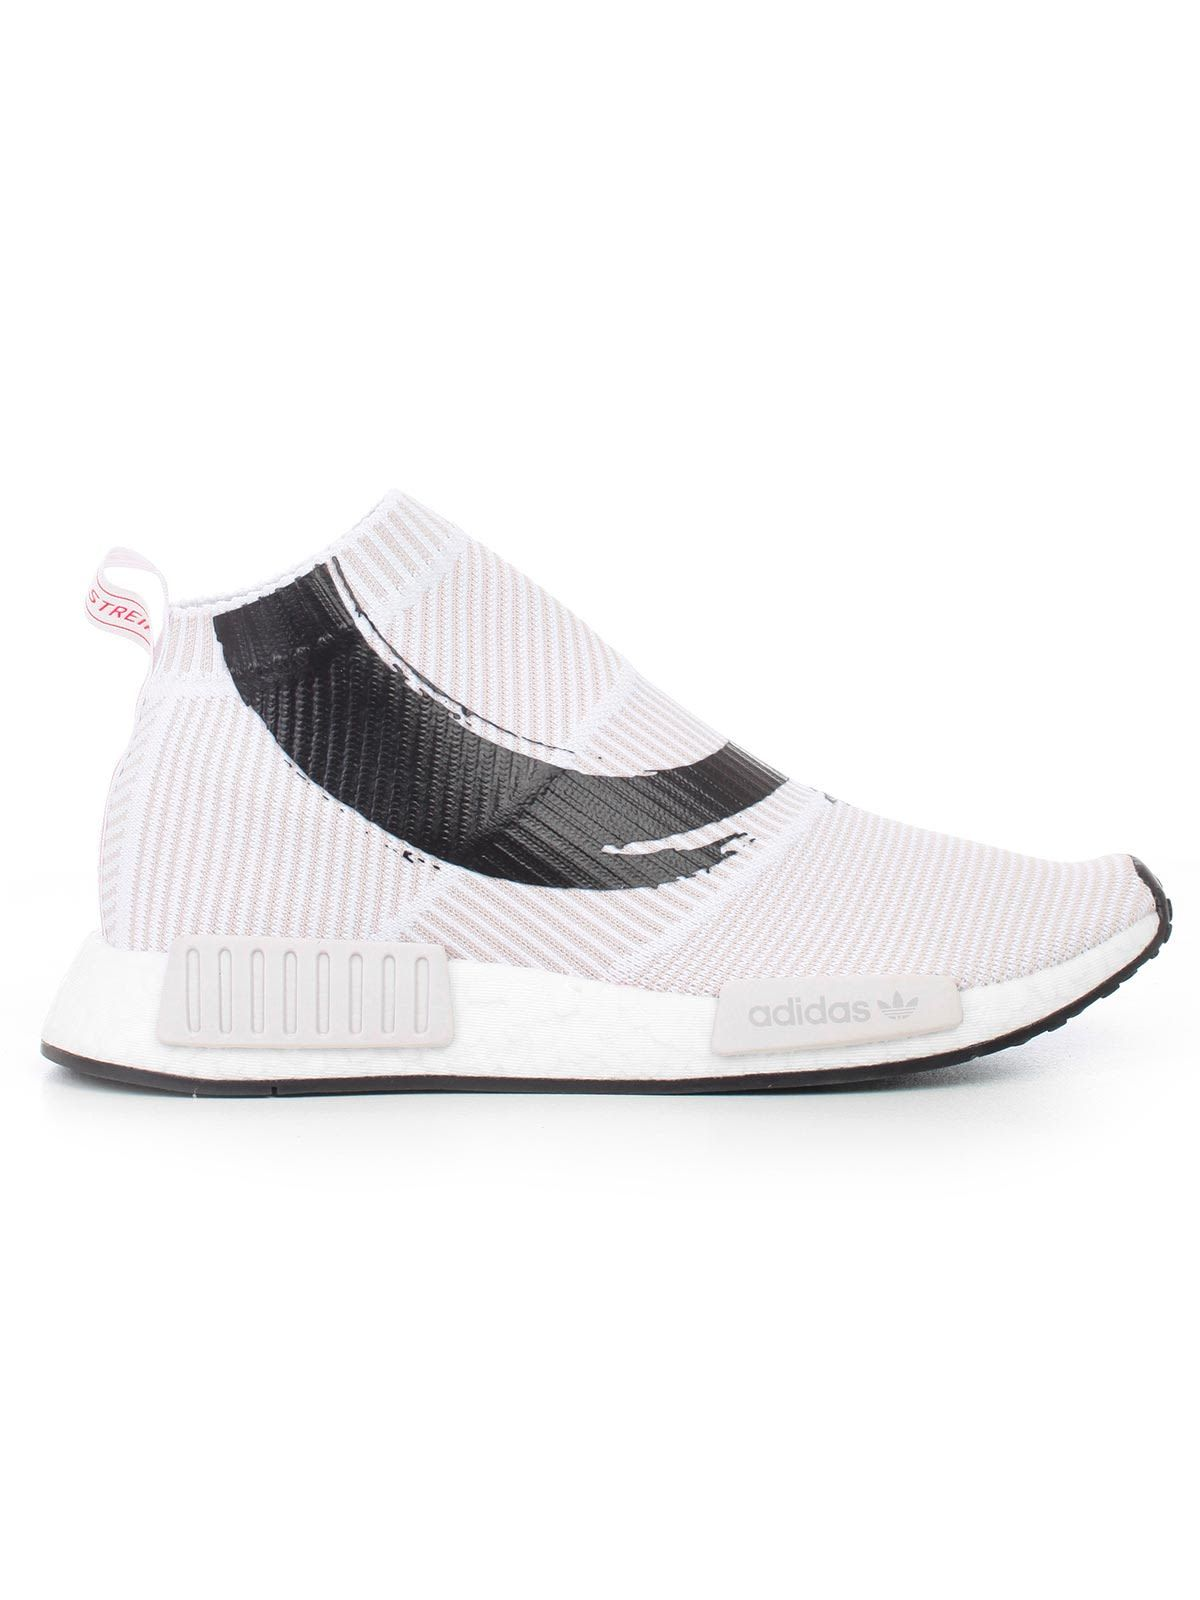 Adidas NMD CS1 Enso sneakers White | Products in 2019